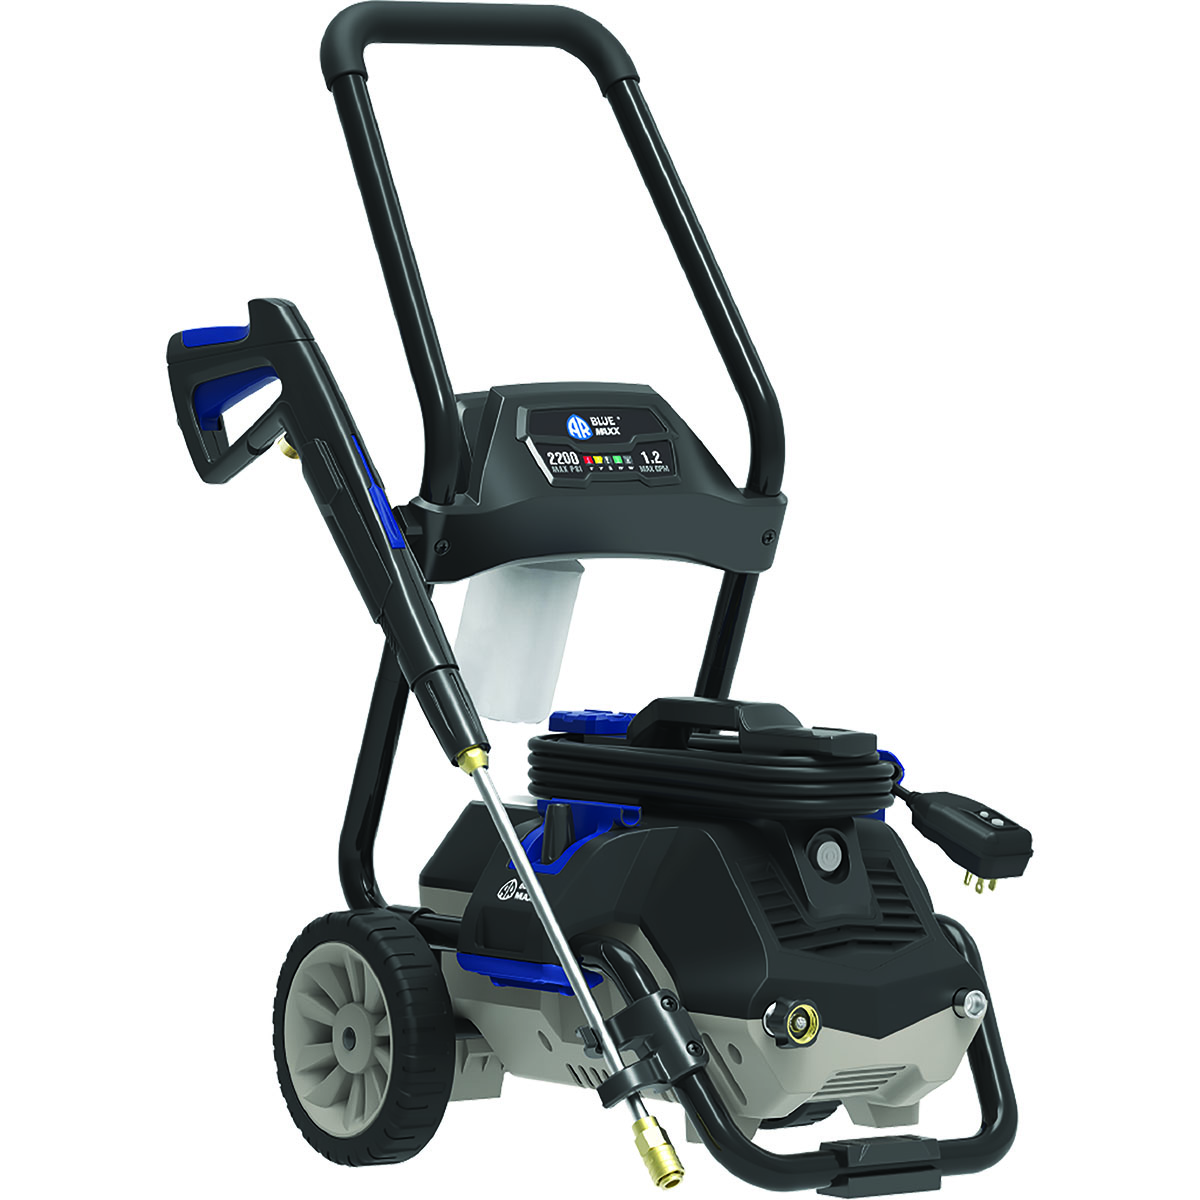 AR Blue Clean 2200 PSI, Induction Electric Pressure Washer, MAXX2200